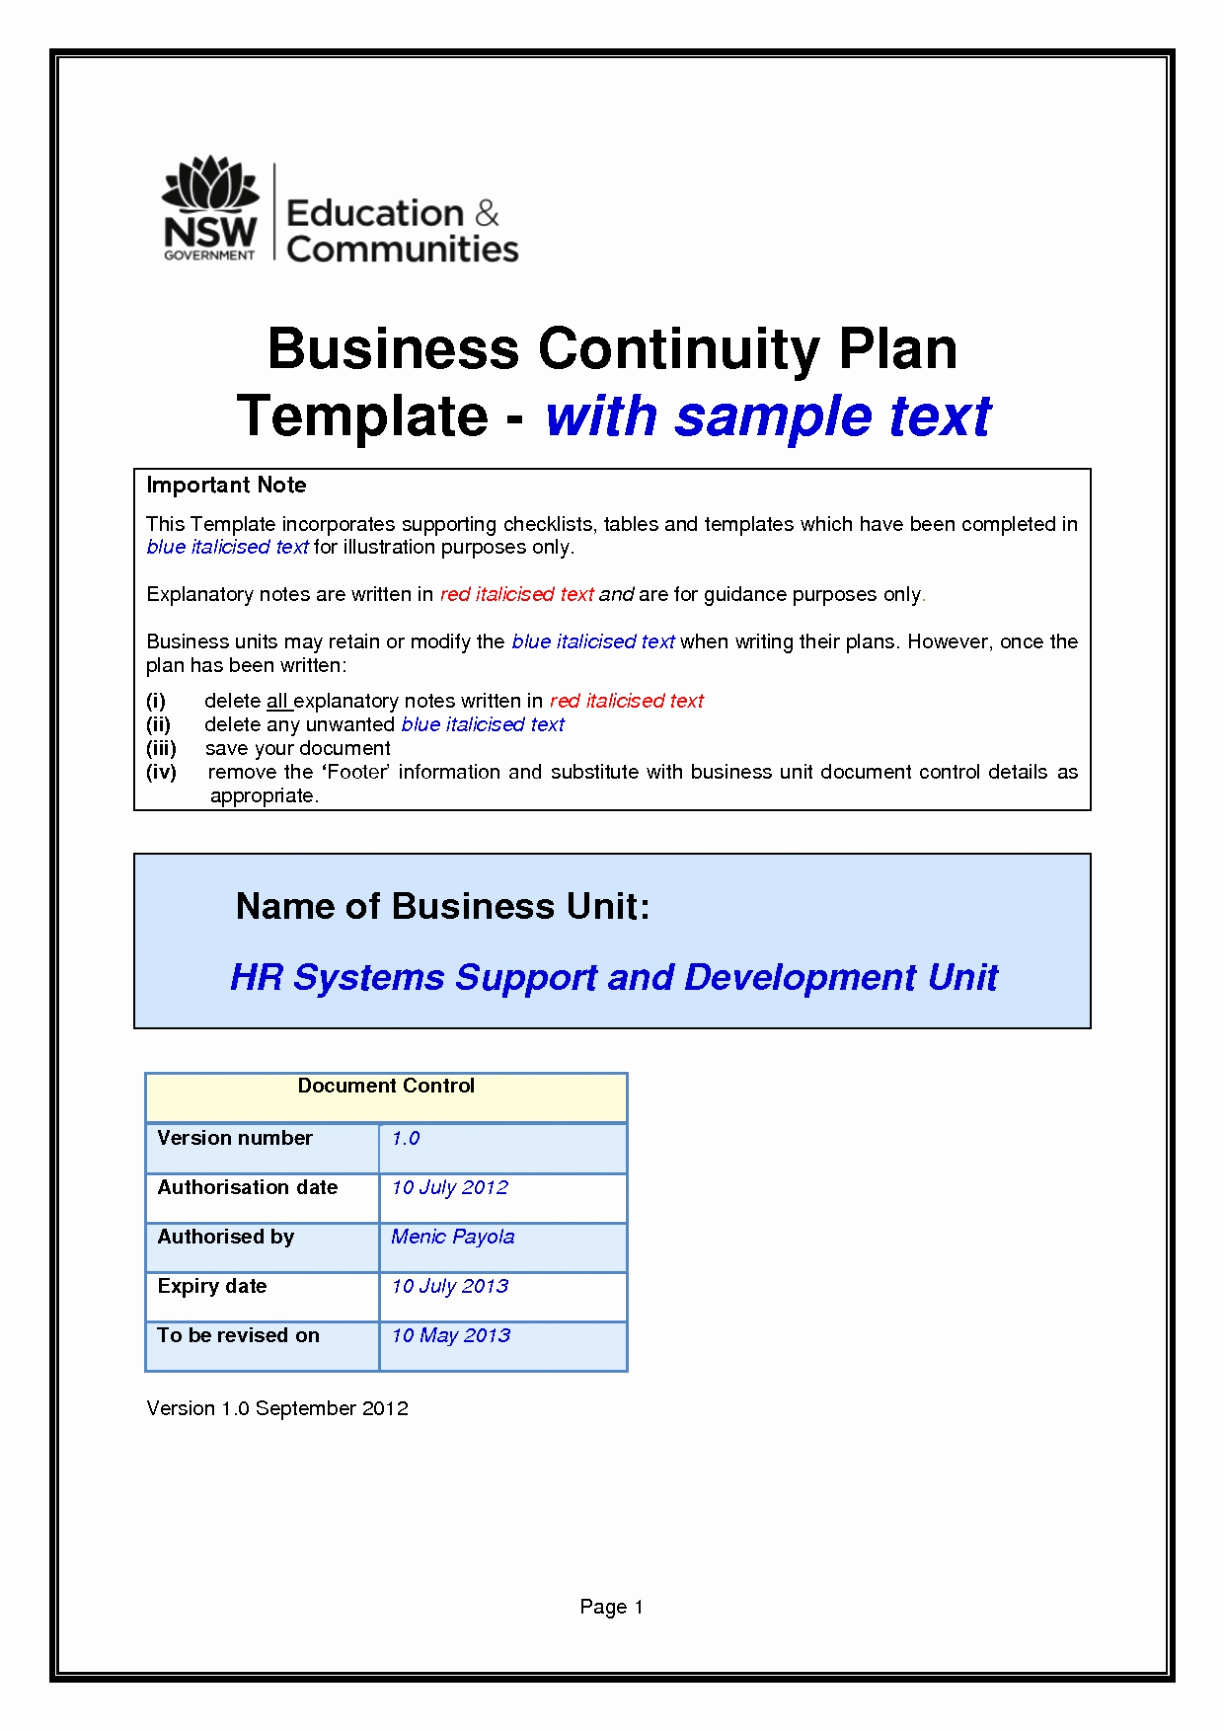 Vendor management plan template best of vendor management plan vendor management plan template best of business plan for small sample pdf strate condant free proposal wajeb Choice Image